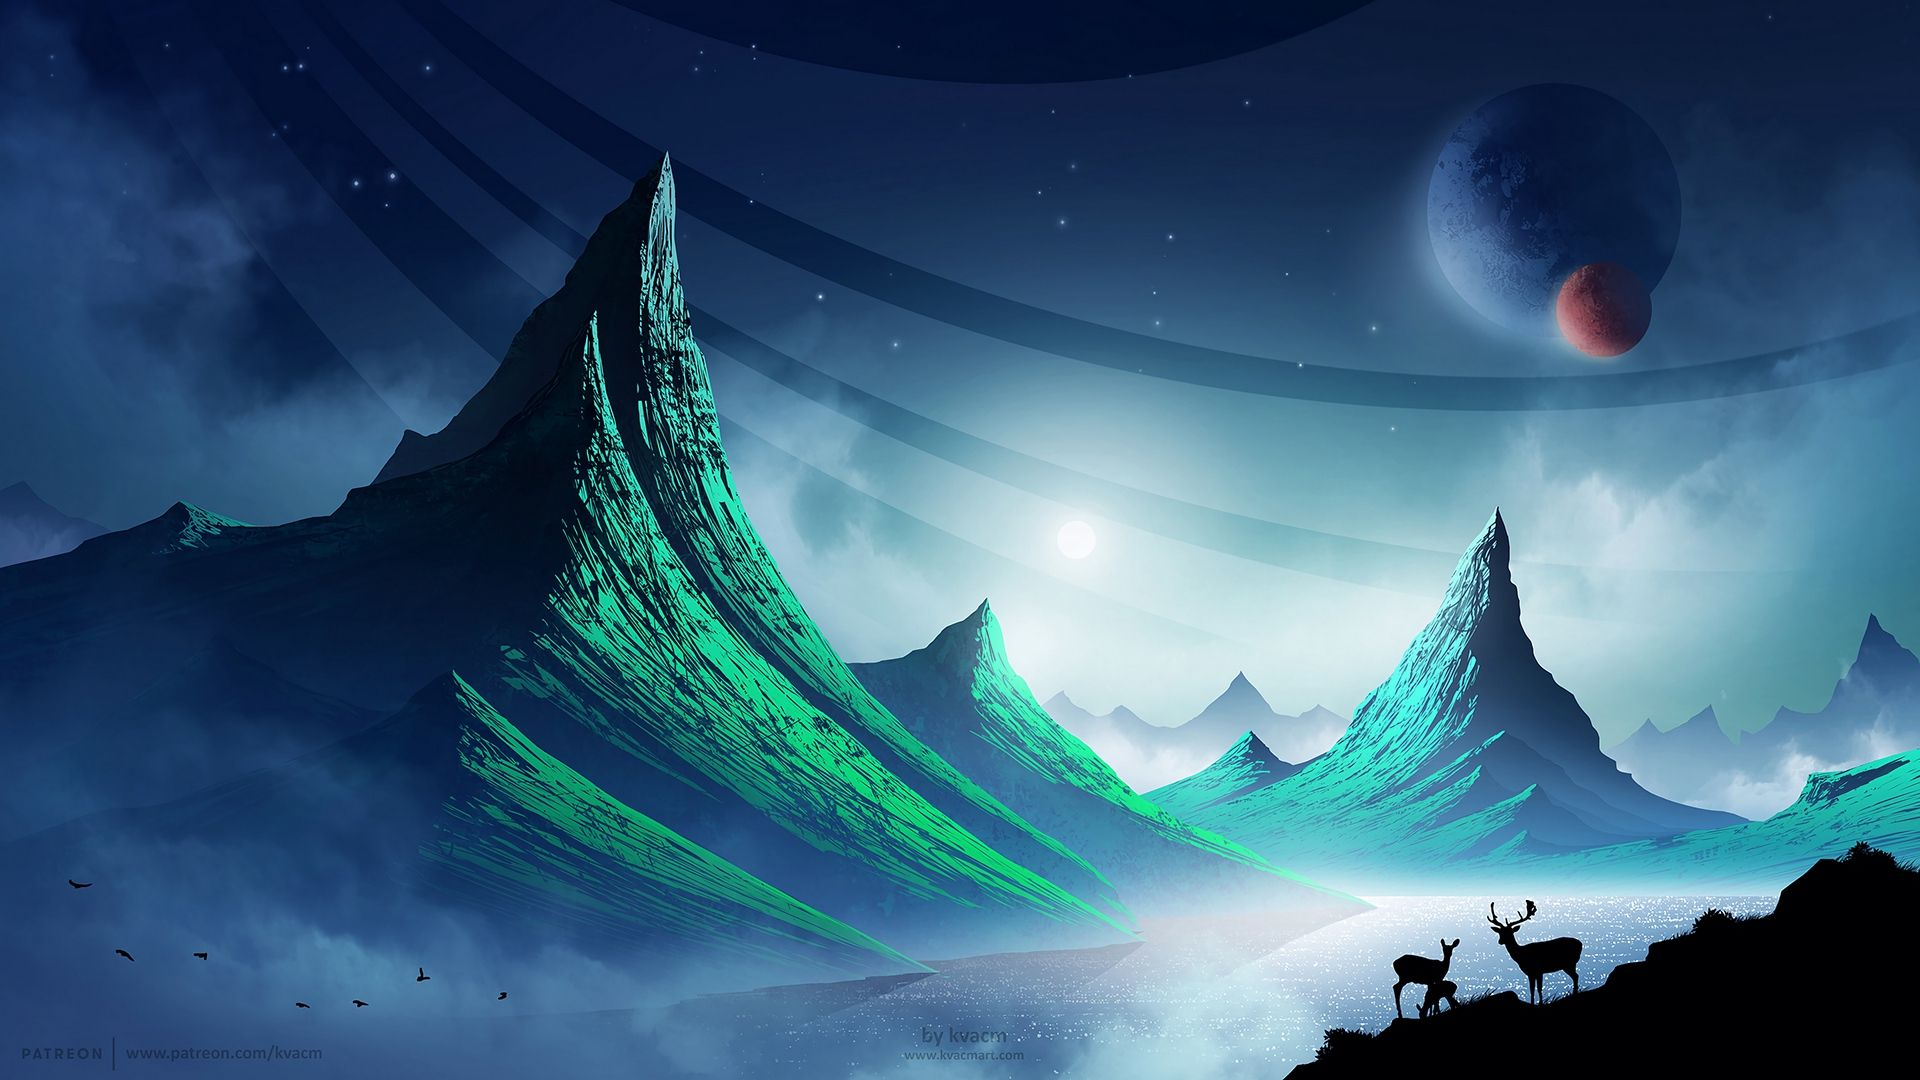 Fantasy Animals In 2020 Night Landscape Art Wallpaper Art